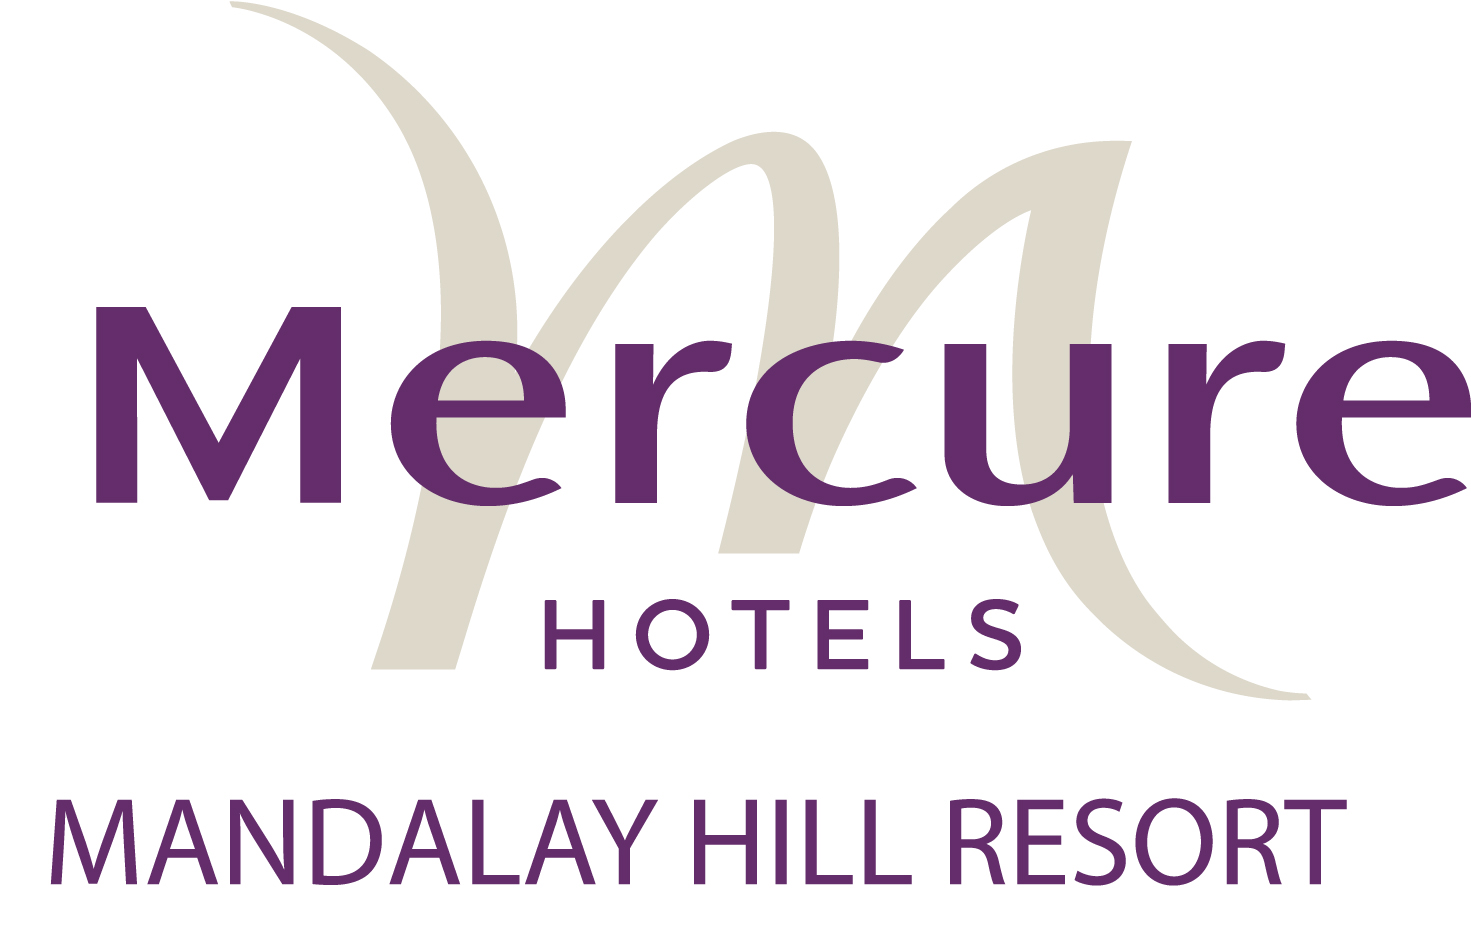 Mercure Mandalay Hill Resort Logo AI (1) copy